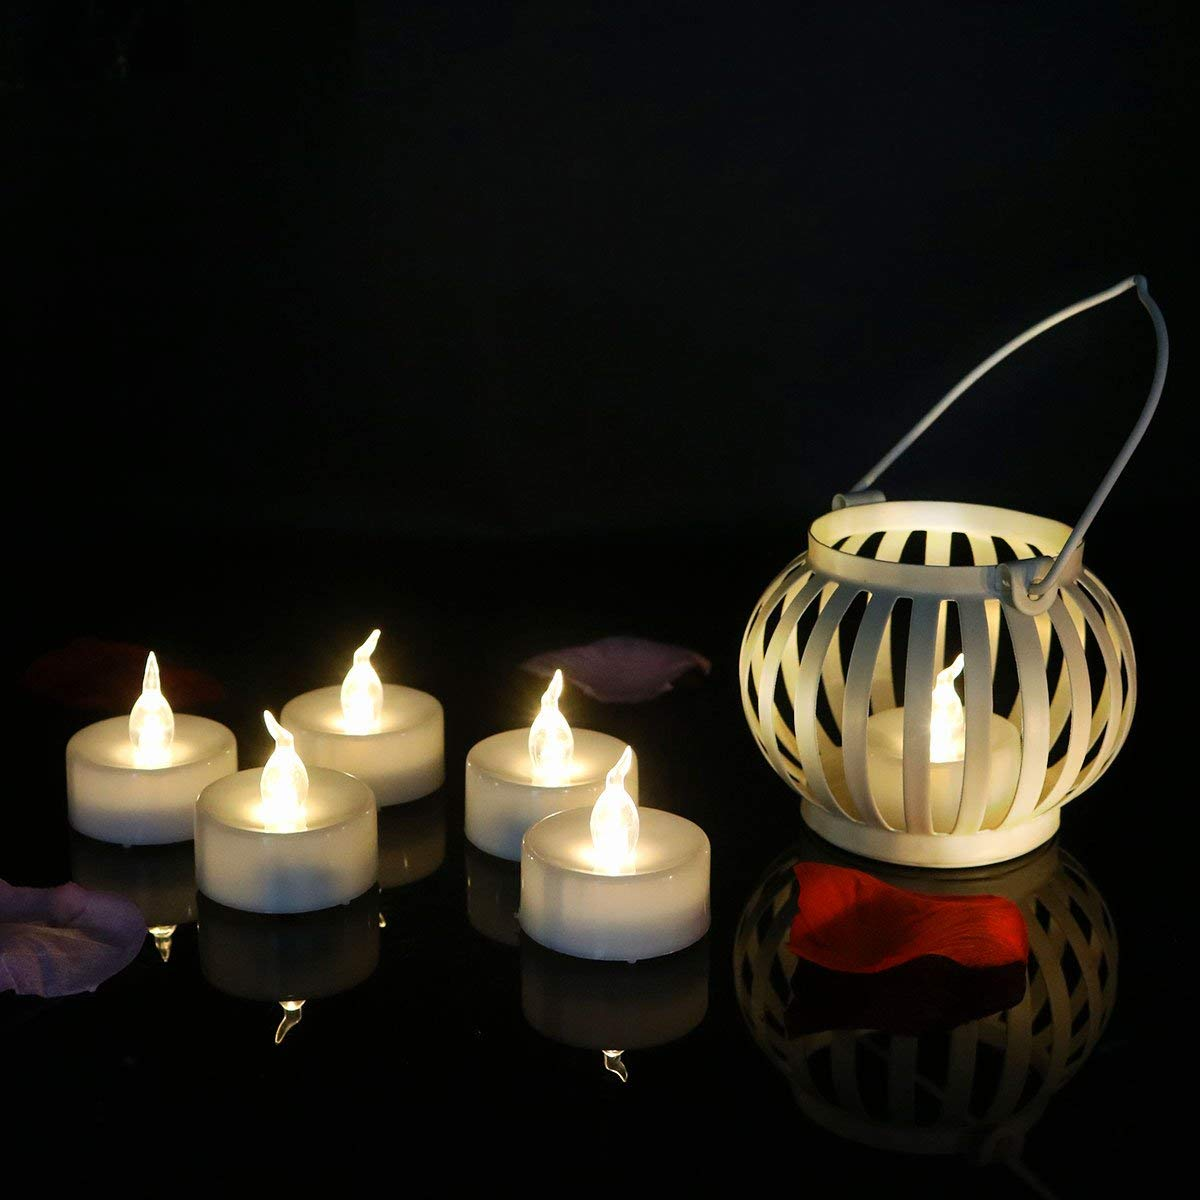 Dellukee White Battery Candles with Timer Flickering Realistic Bright LED Tea Lights Flameless Candles for Wedding Birthday Party Decoration, Pack of 96, Electric Fake Candle in Warm White